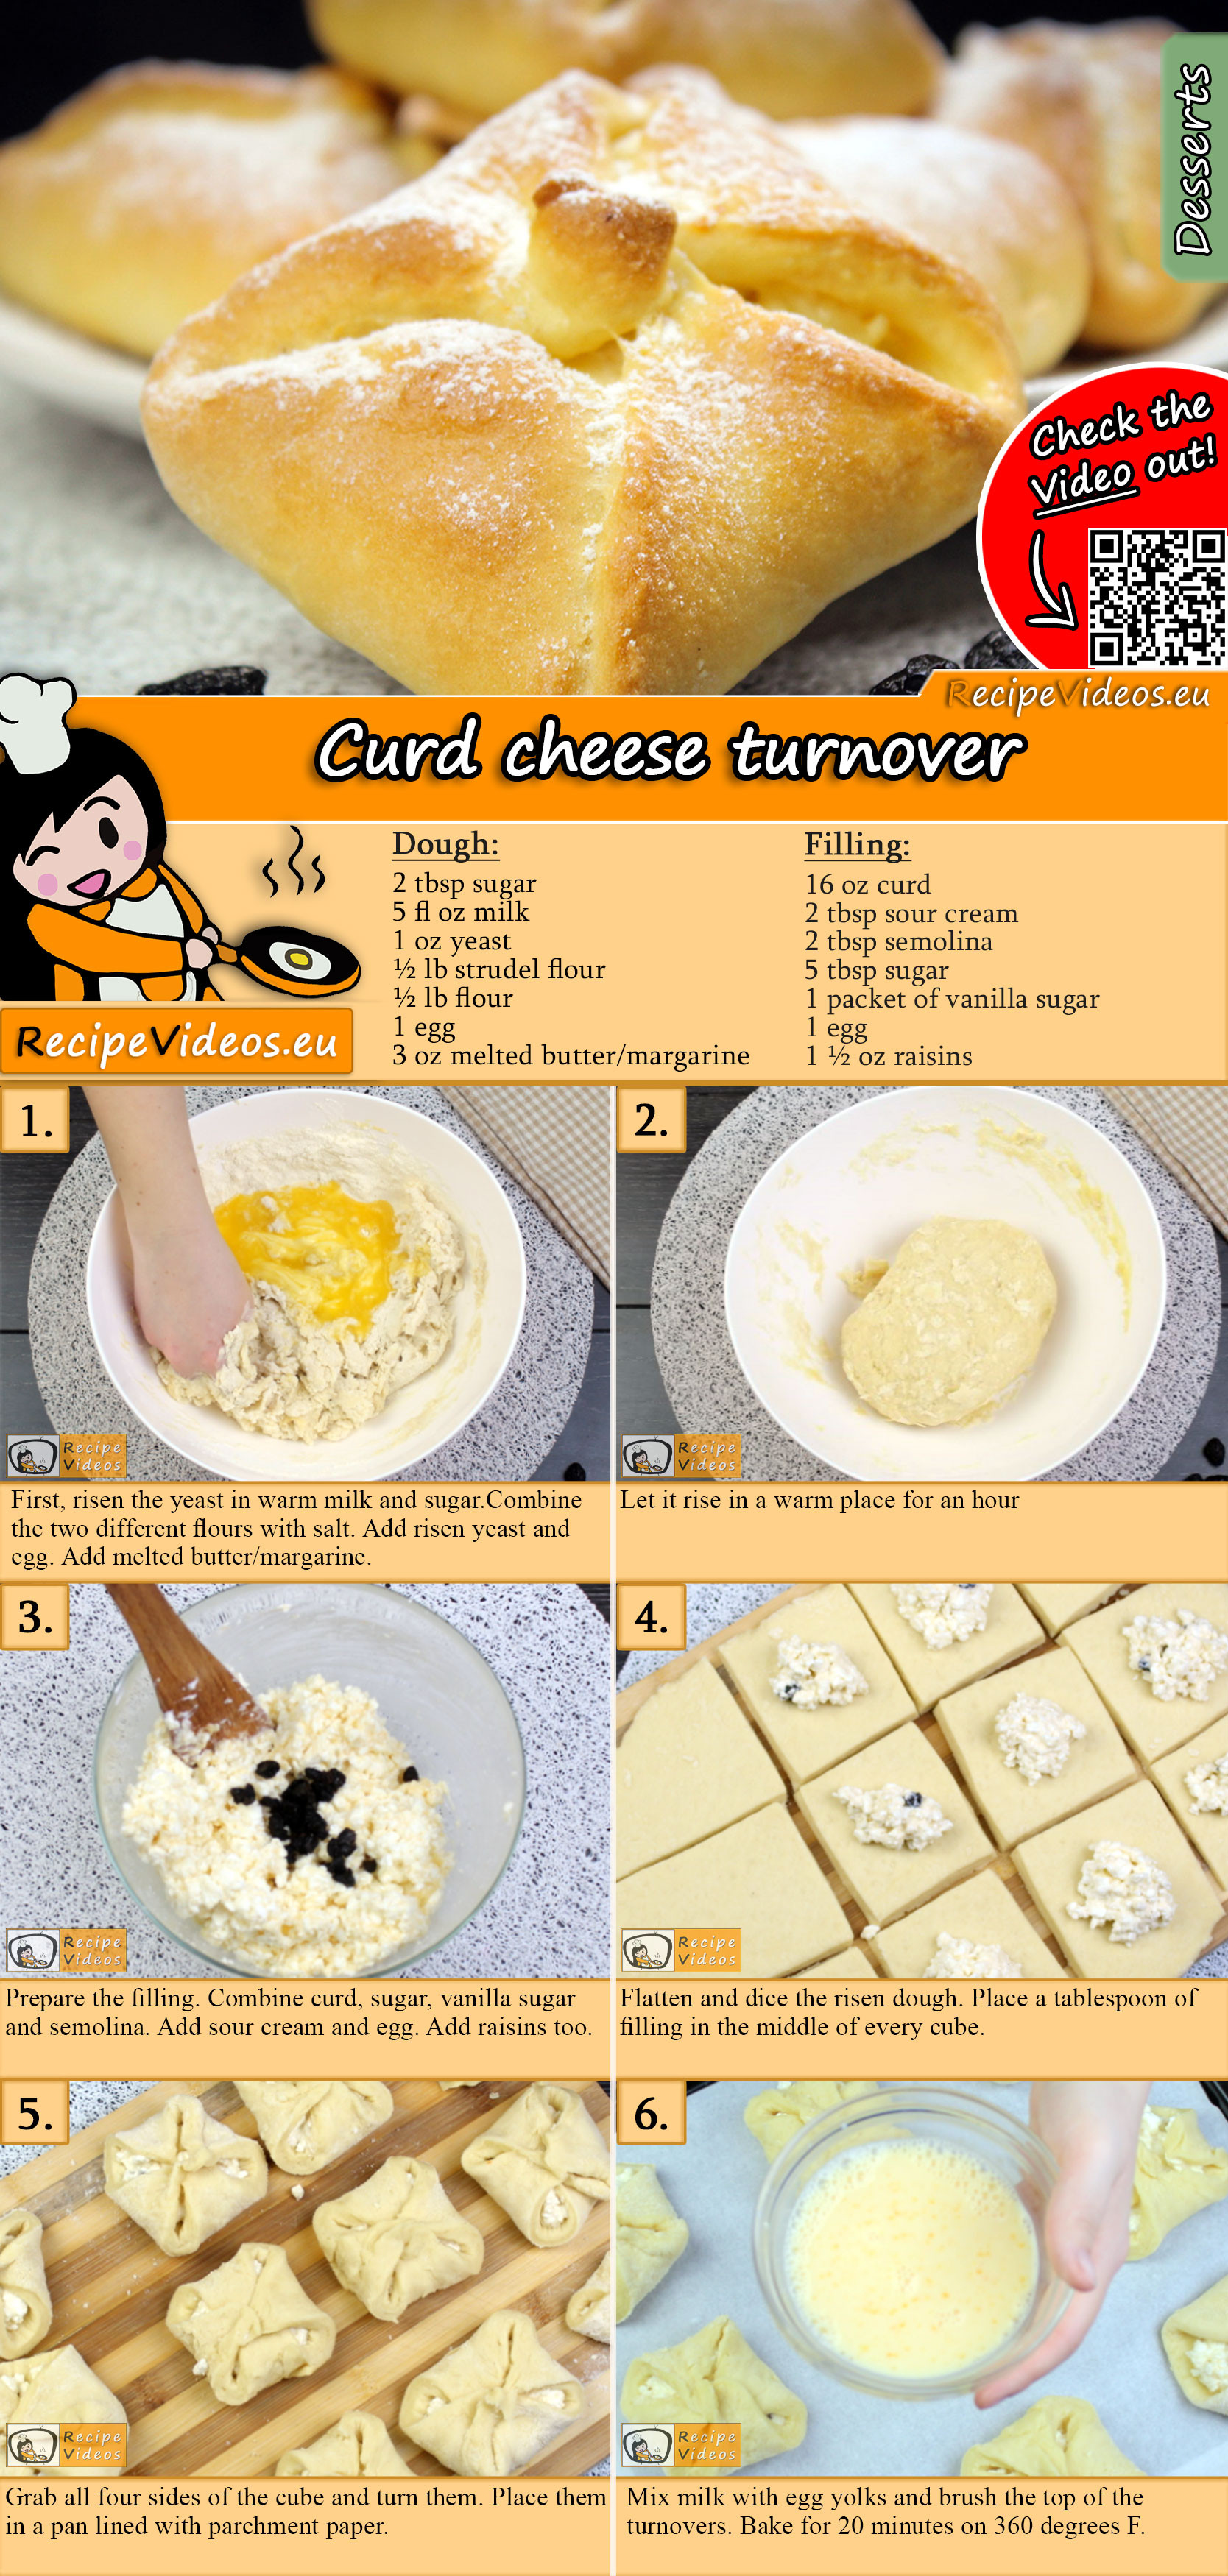 Curd cheese turnover recipe with video